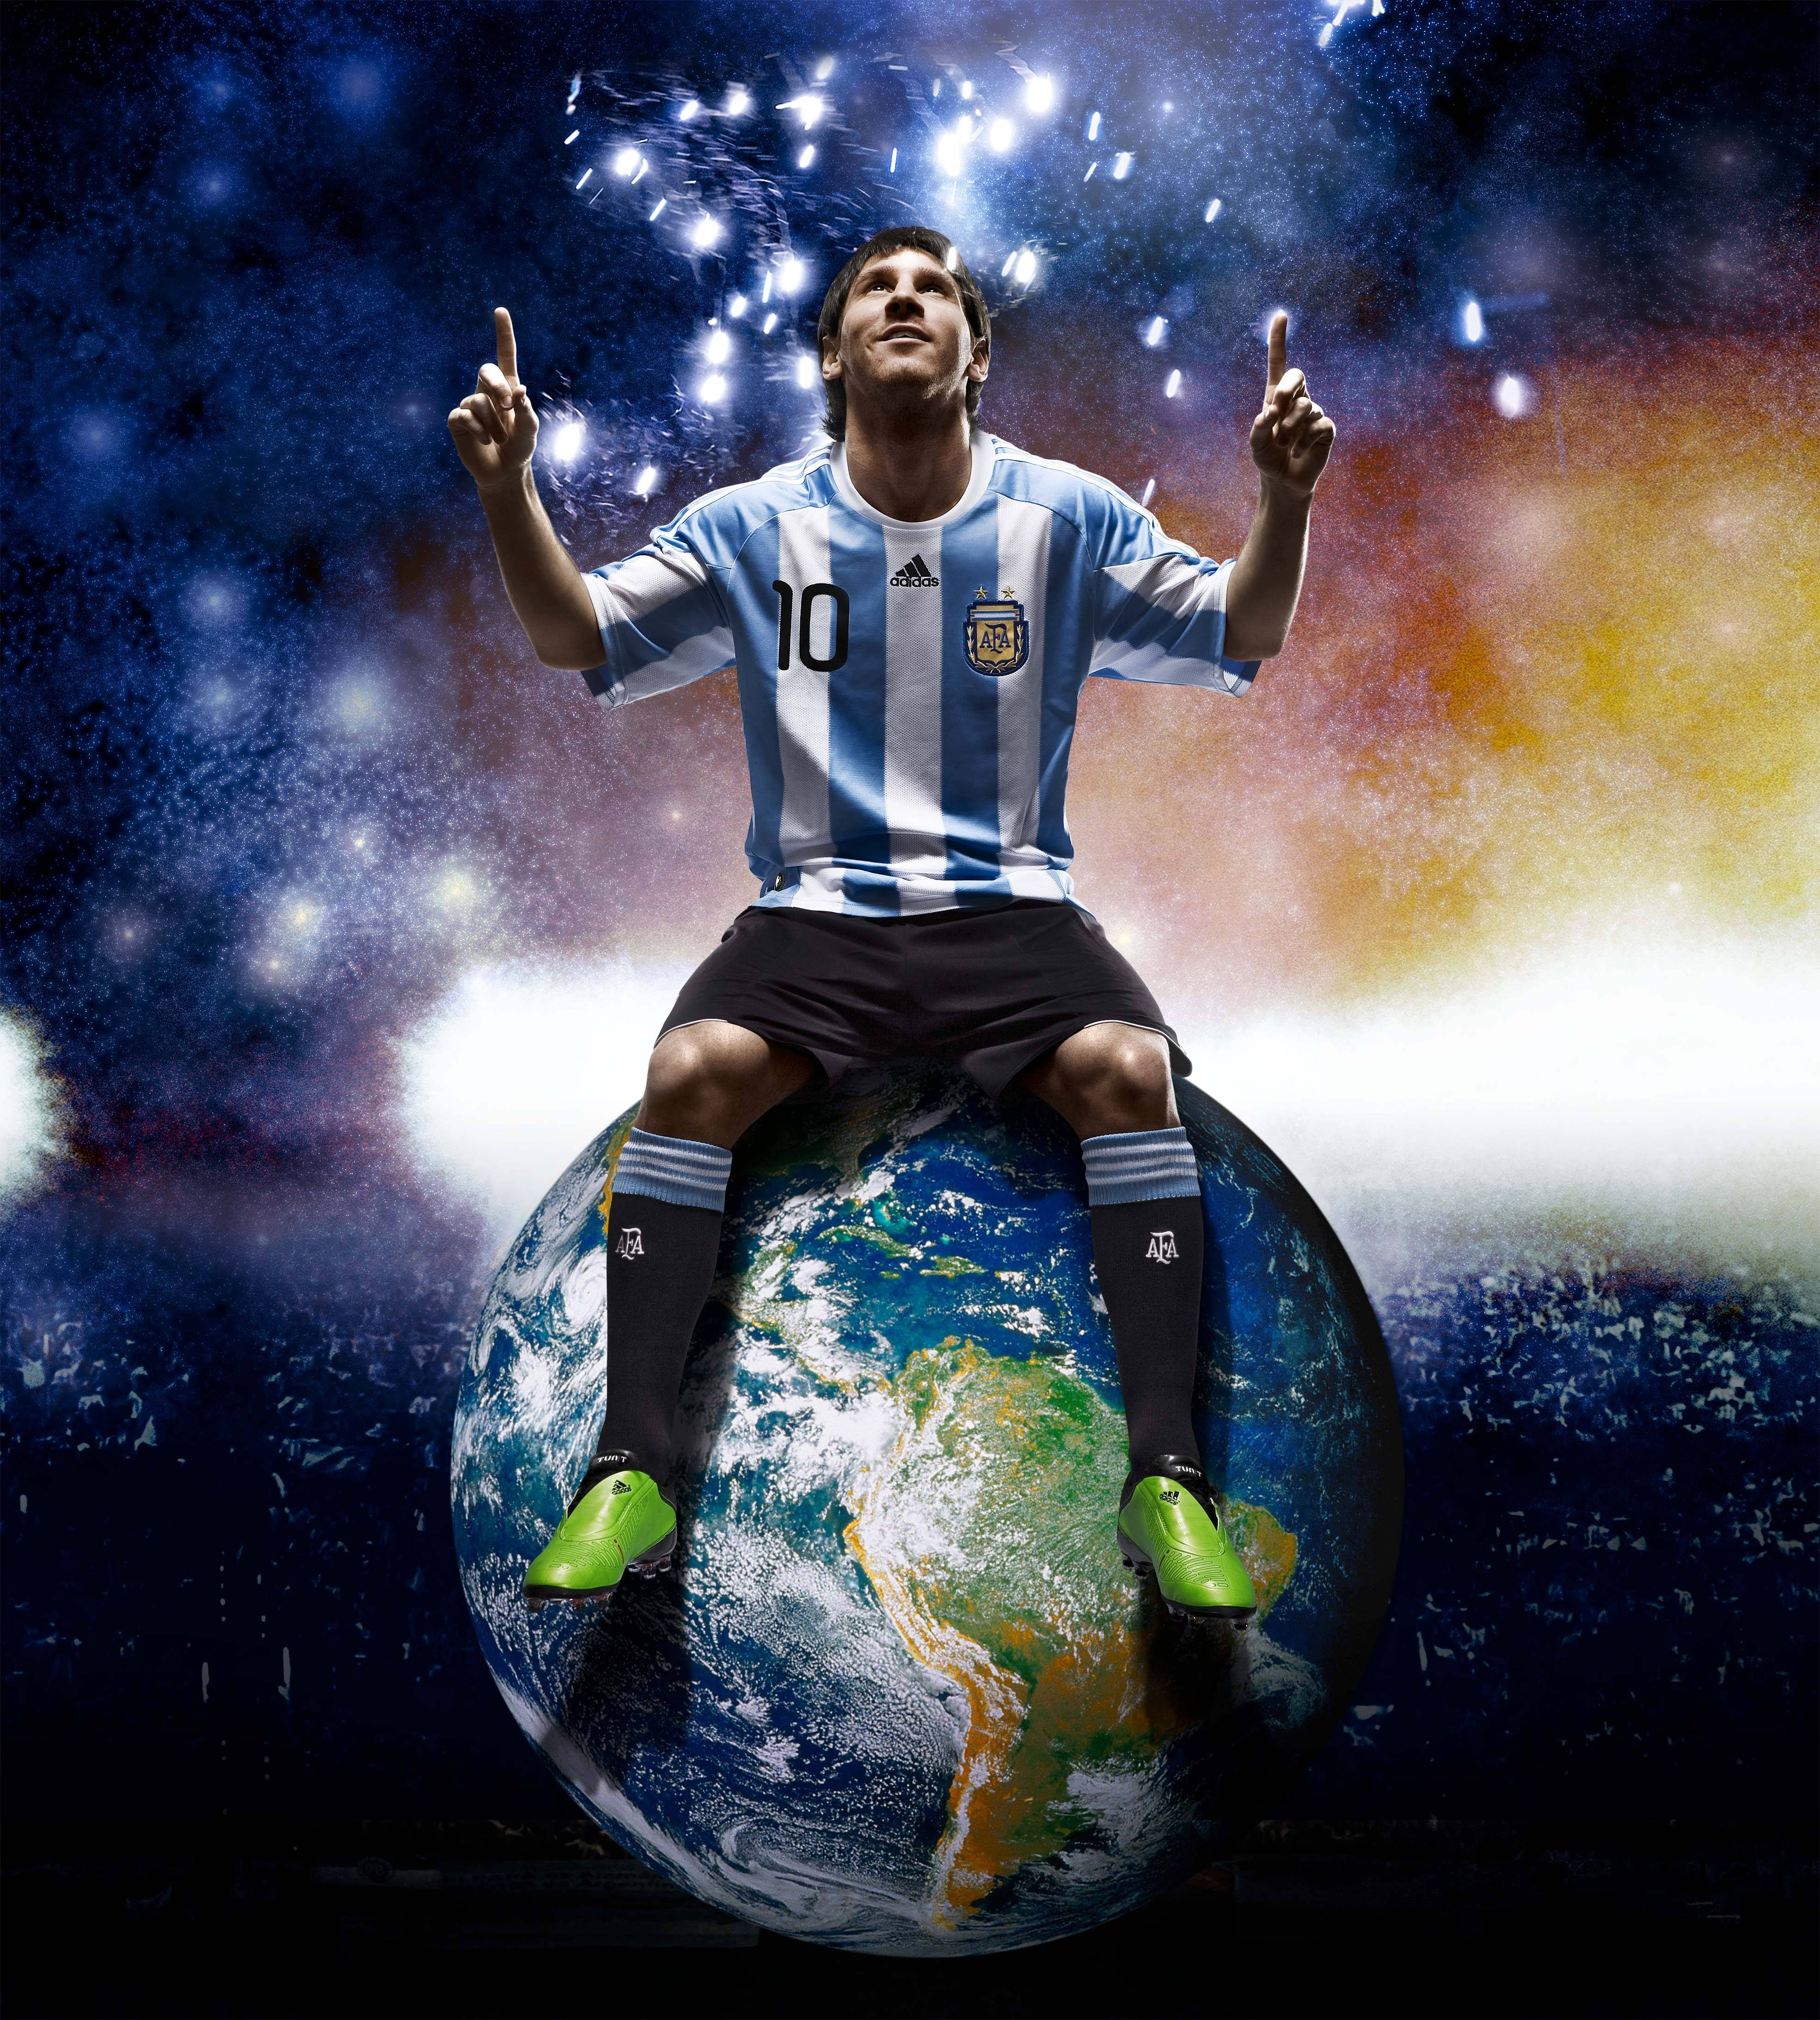 Messi hd wallpapers 1080p 2017 wallpaper cave for Best online photo gallery